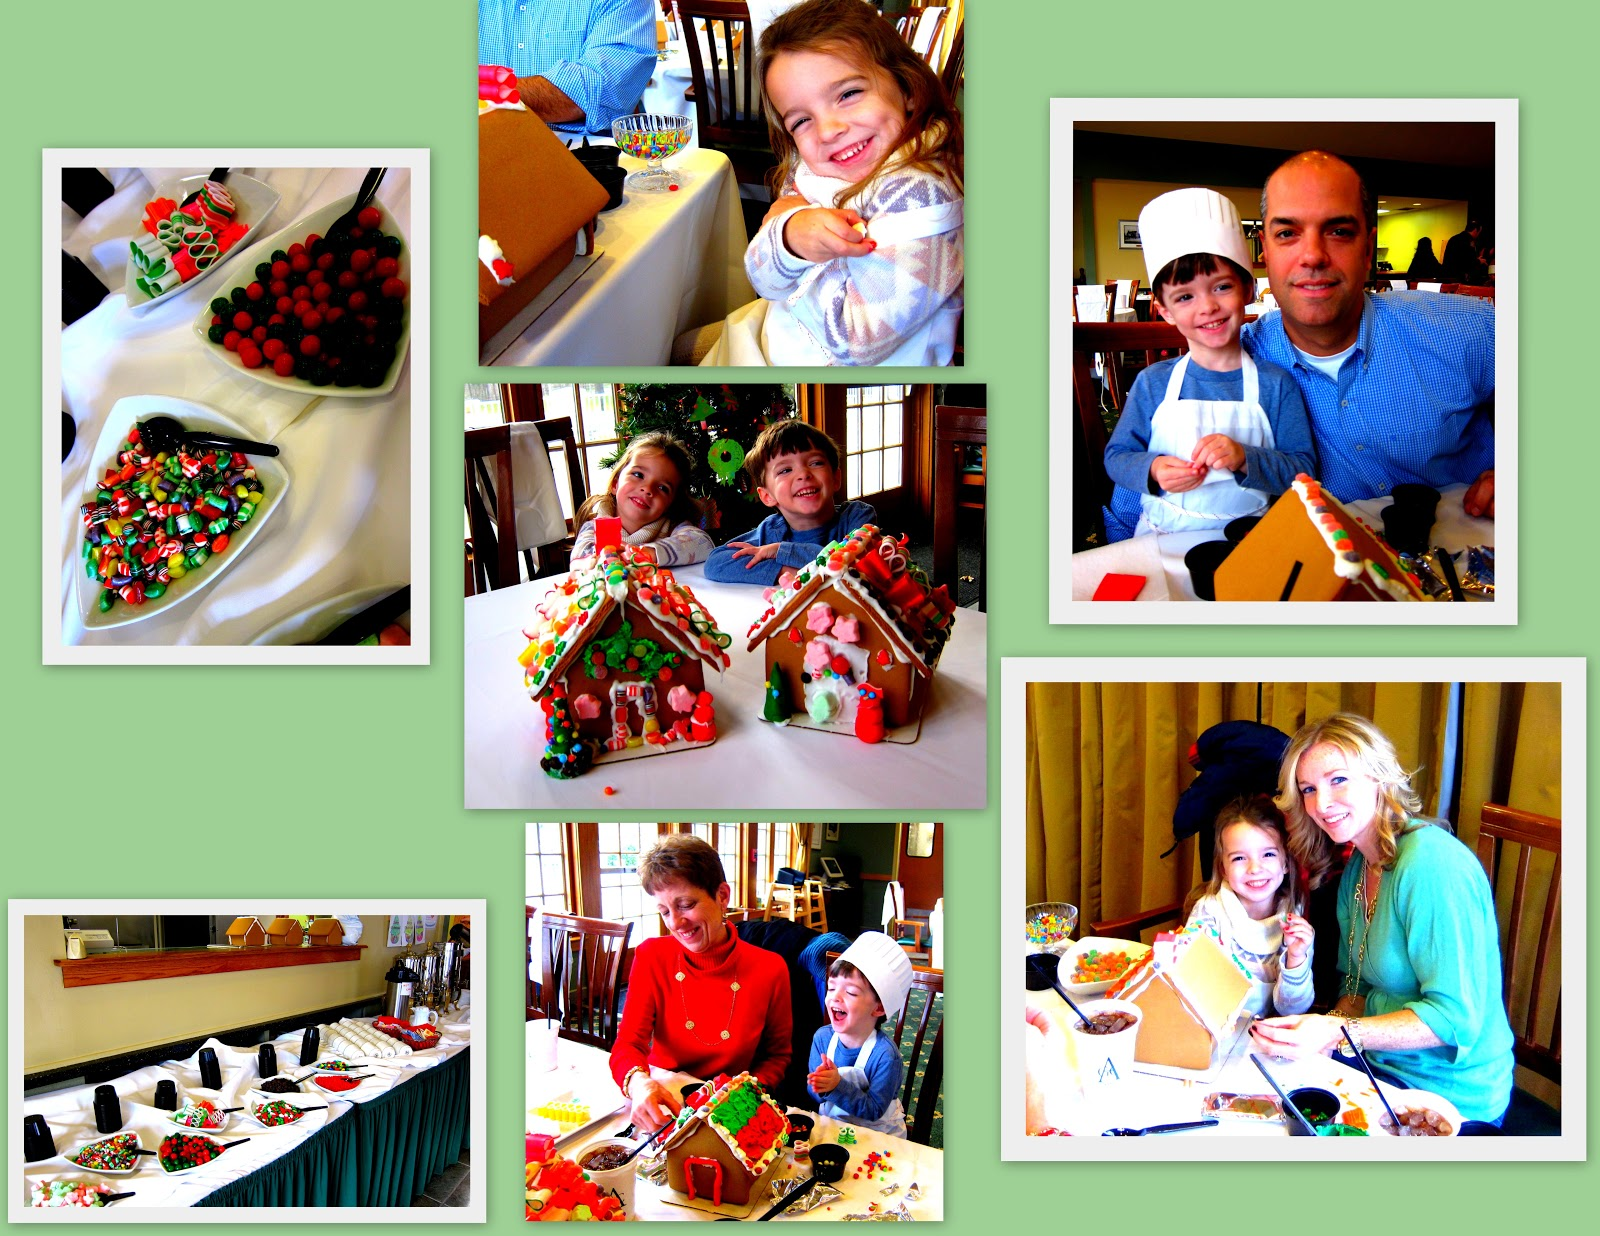 Cooking with kids, Crafts with kids, making gingerbread houses with kids